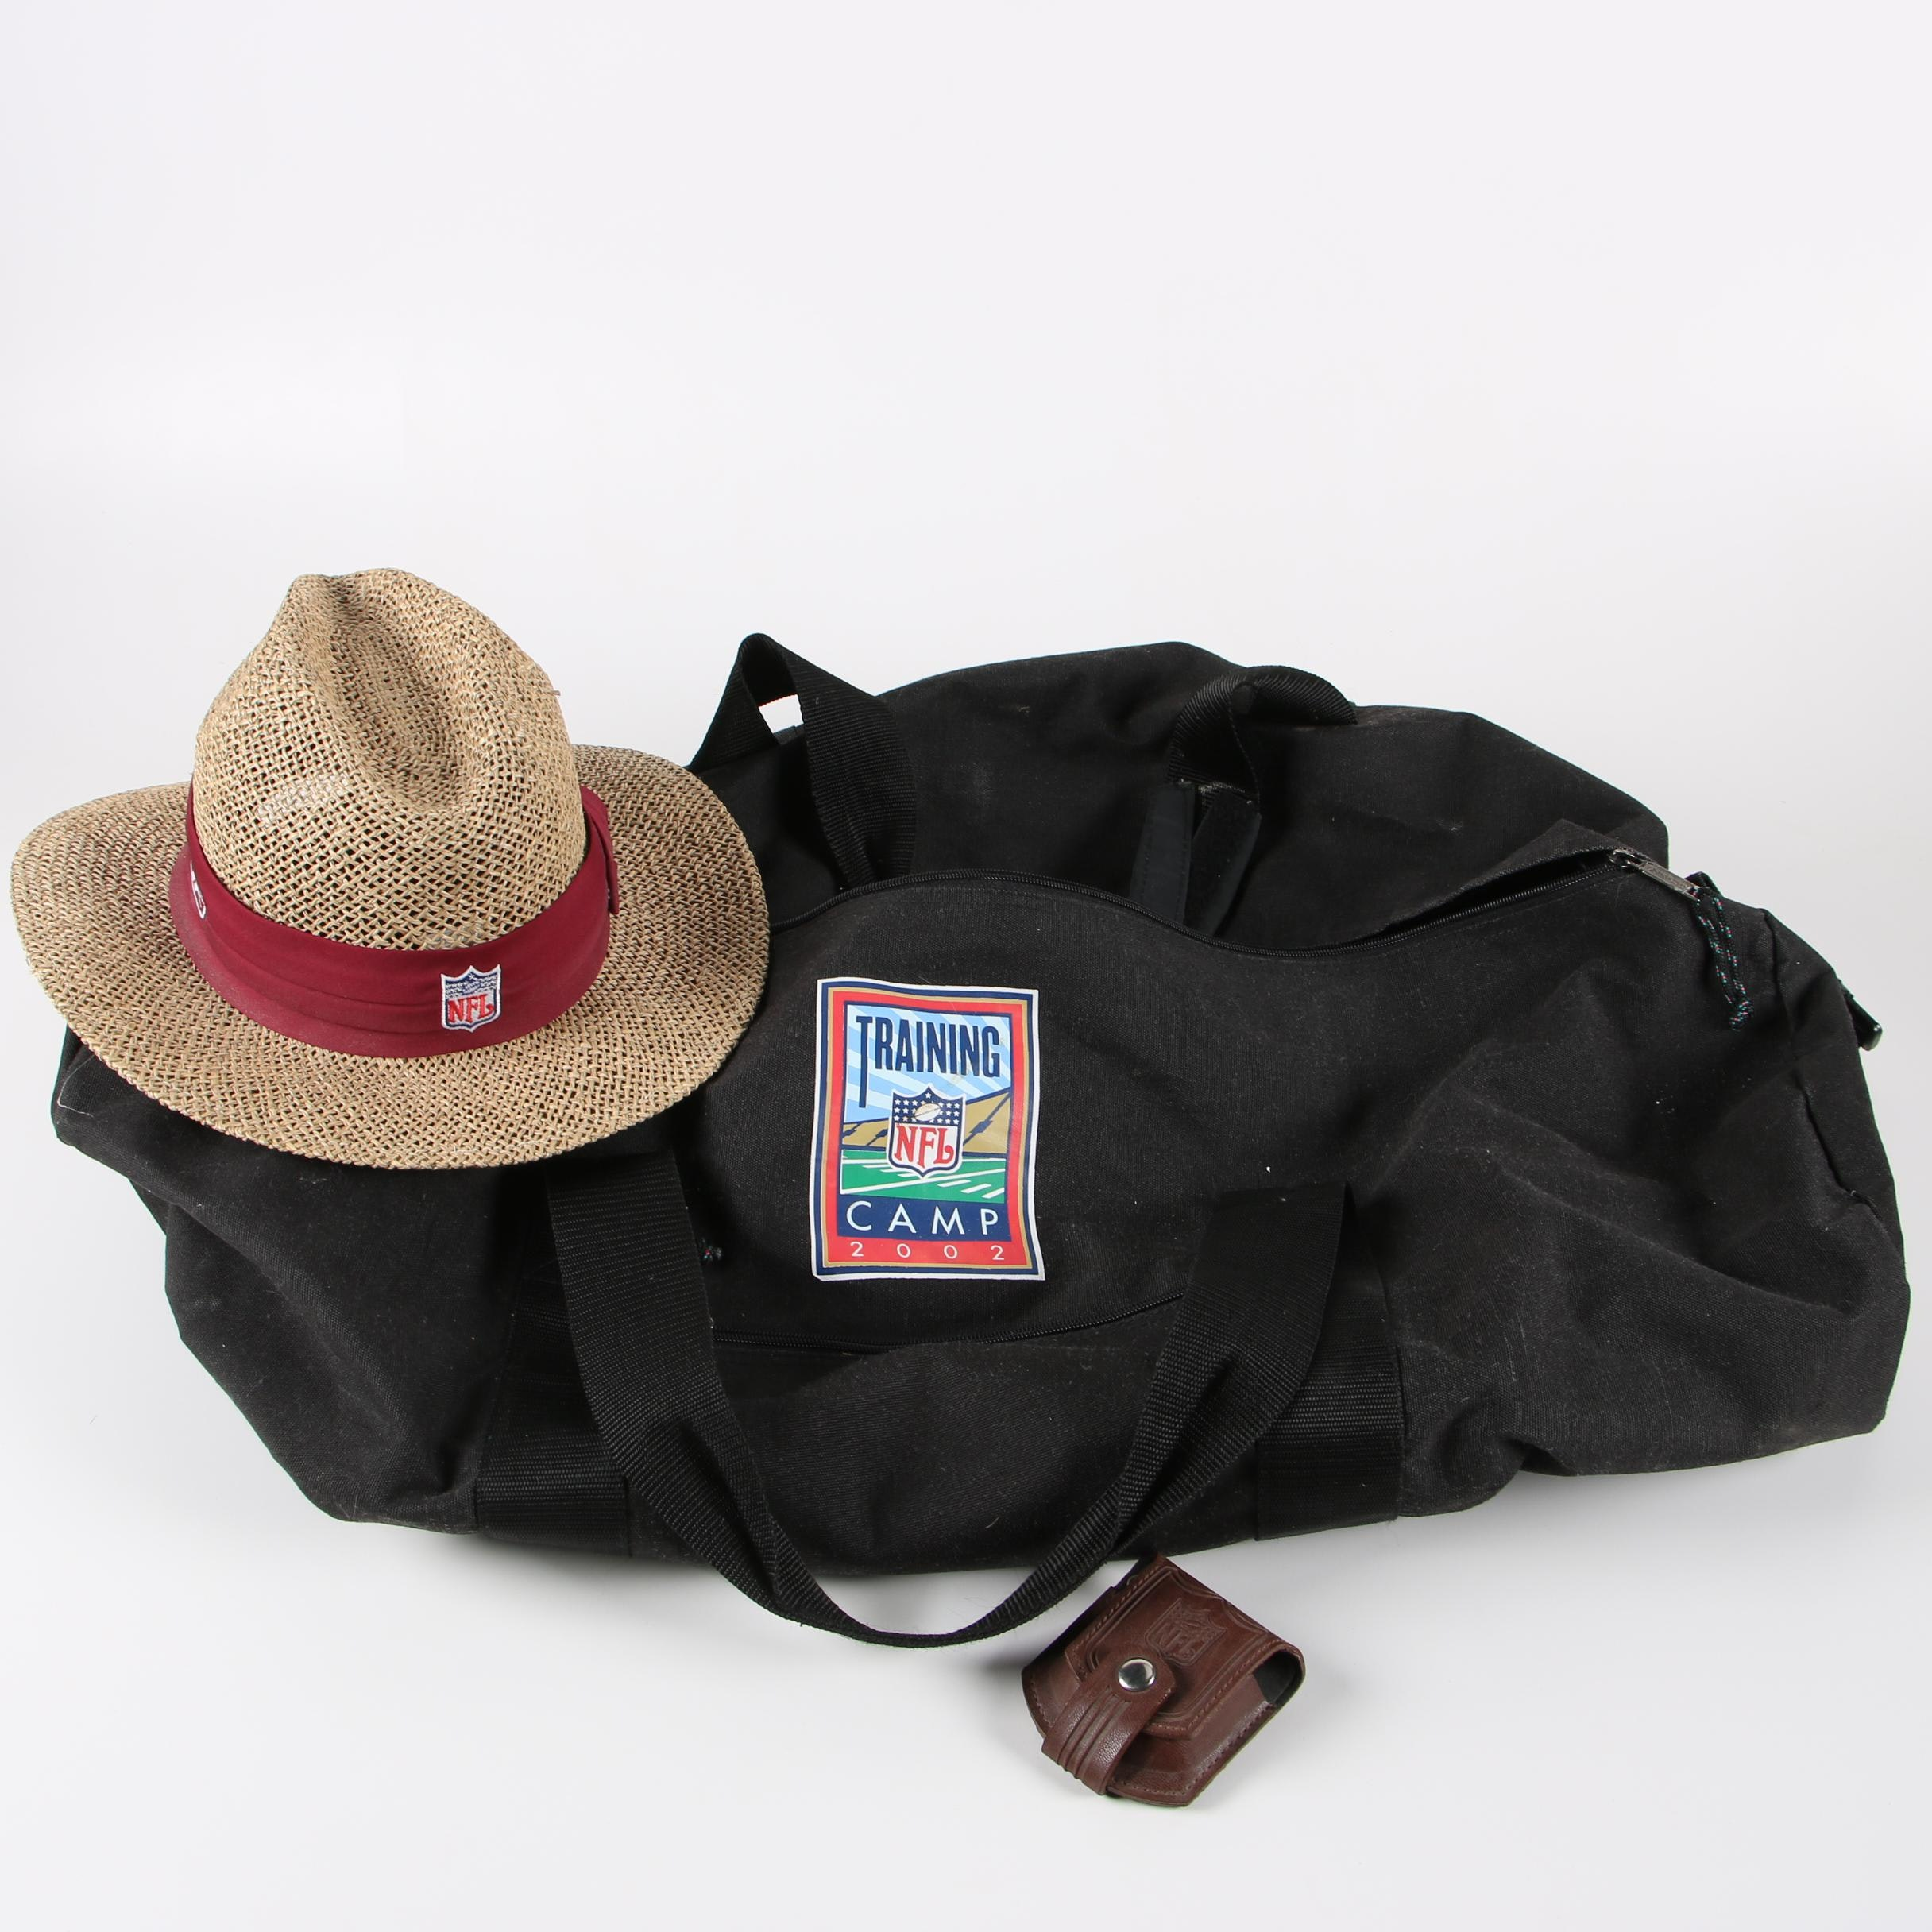 NFL 2002 Training Camp Duffel Bag with 49ers Hat